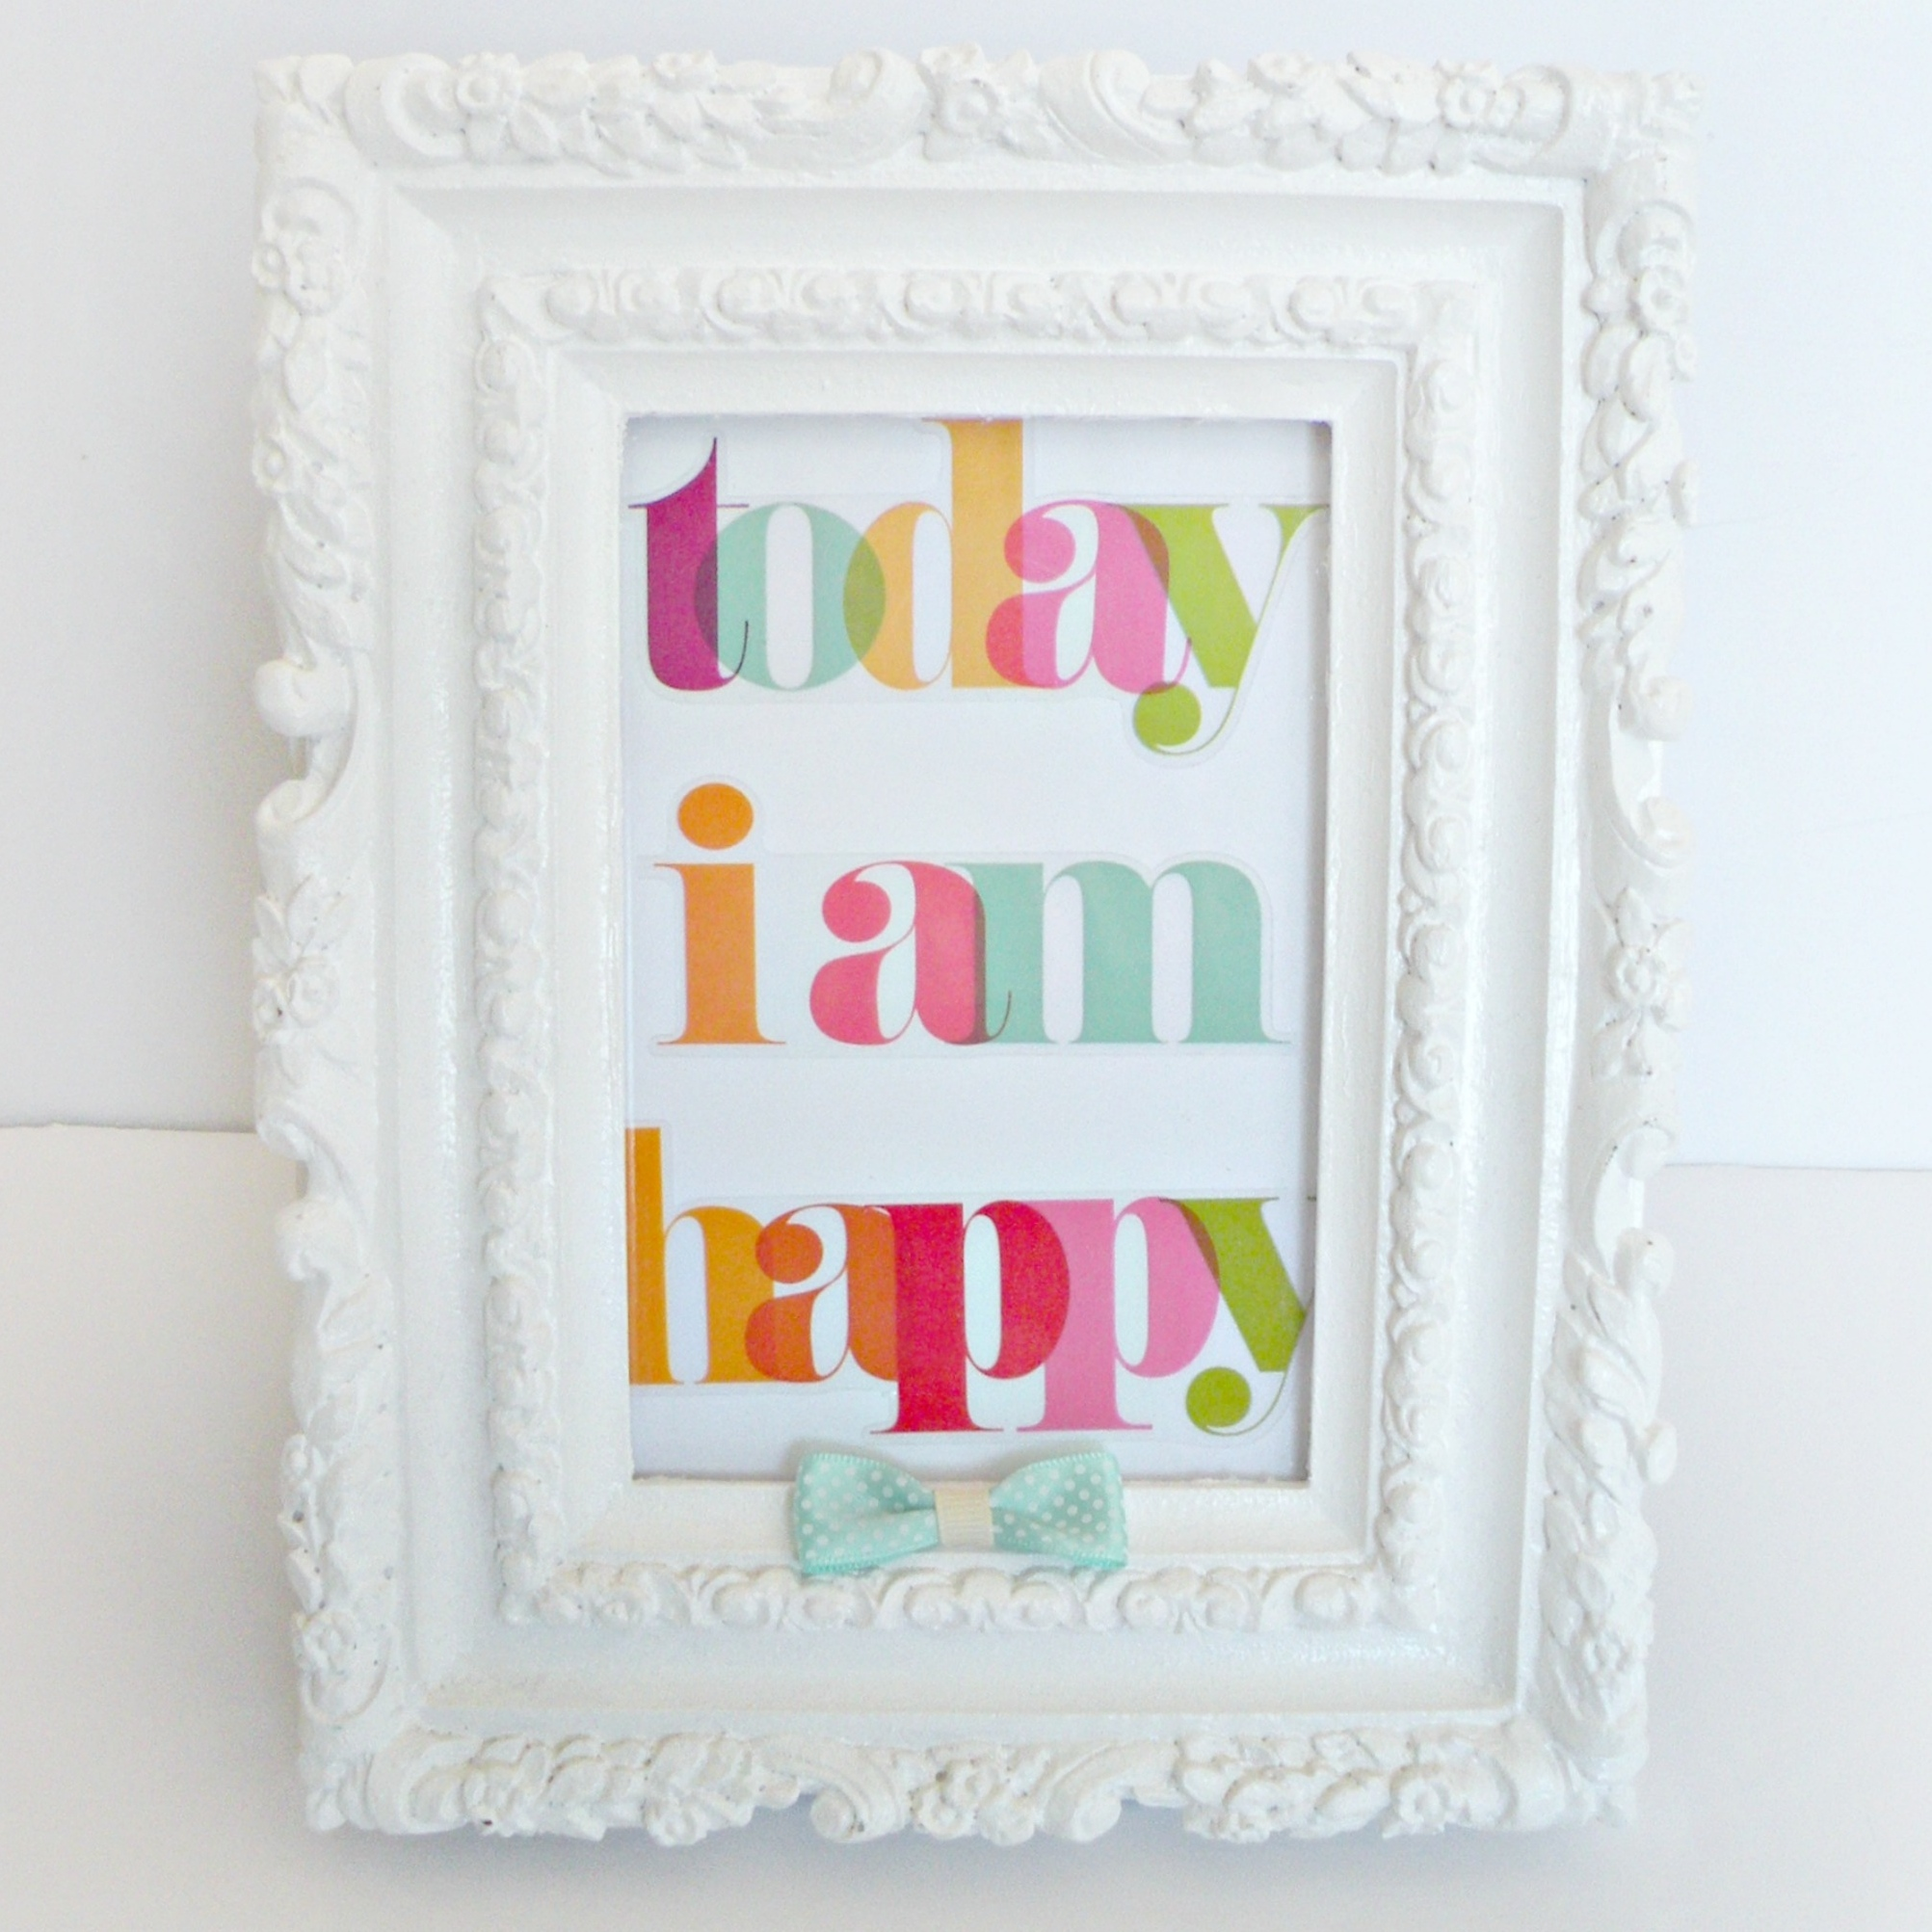 Today I am happy mambi sticker framed..jpg